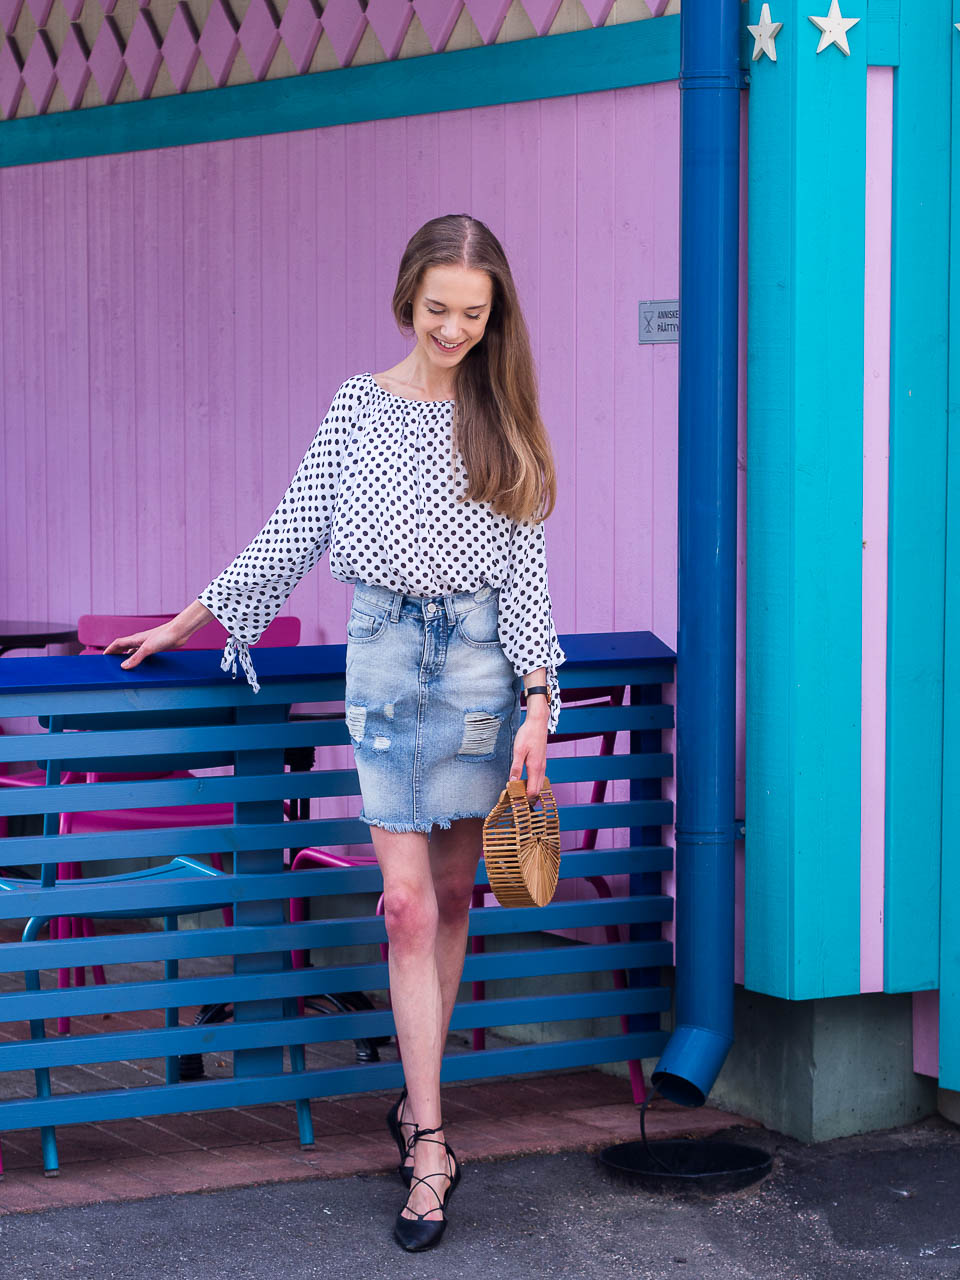 fashion-blogger-summer-outfit-polka-dots